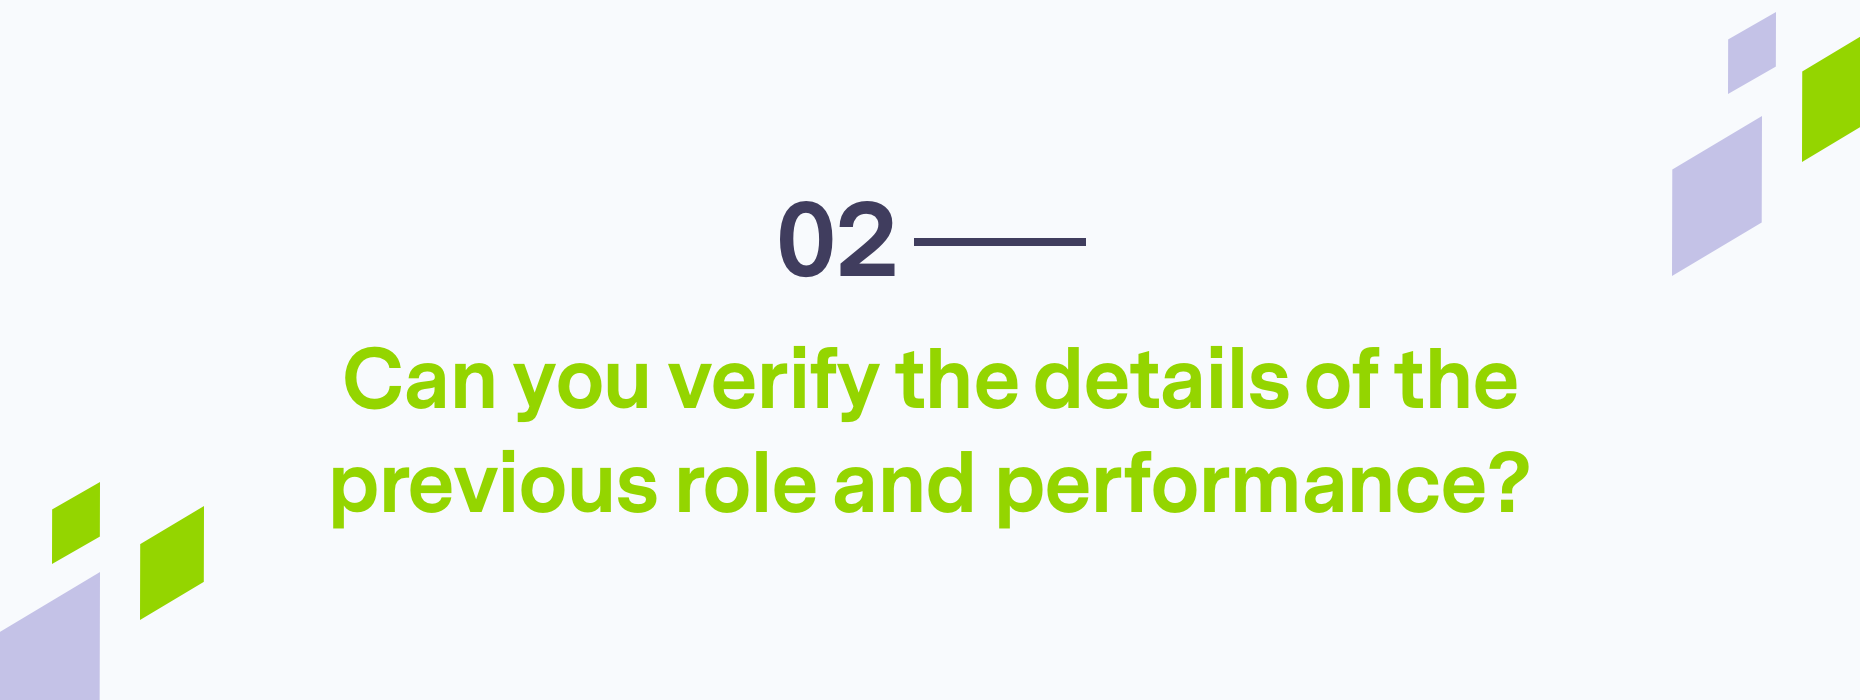 Branded question about verifiying details about previous roles